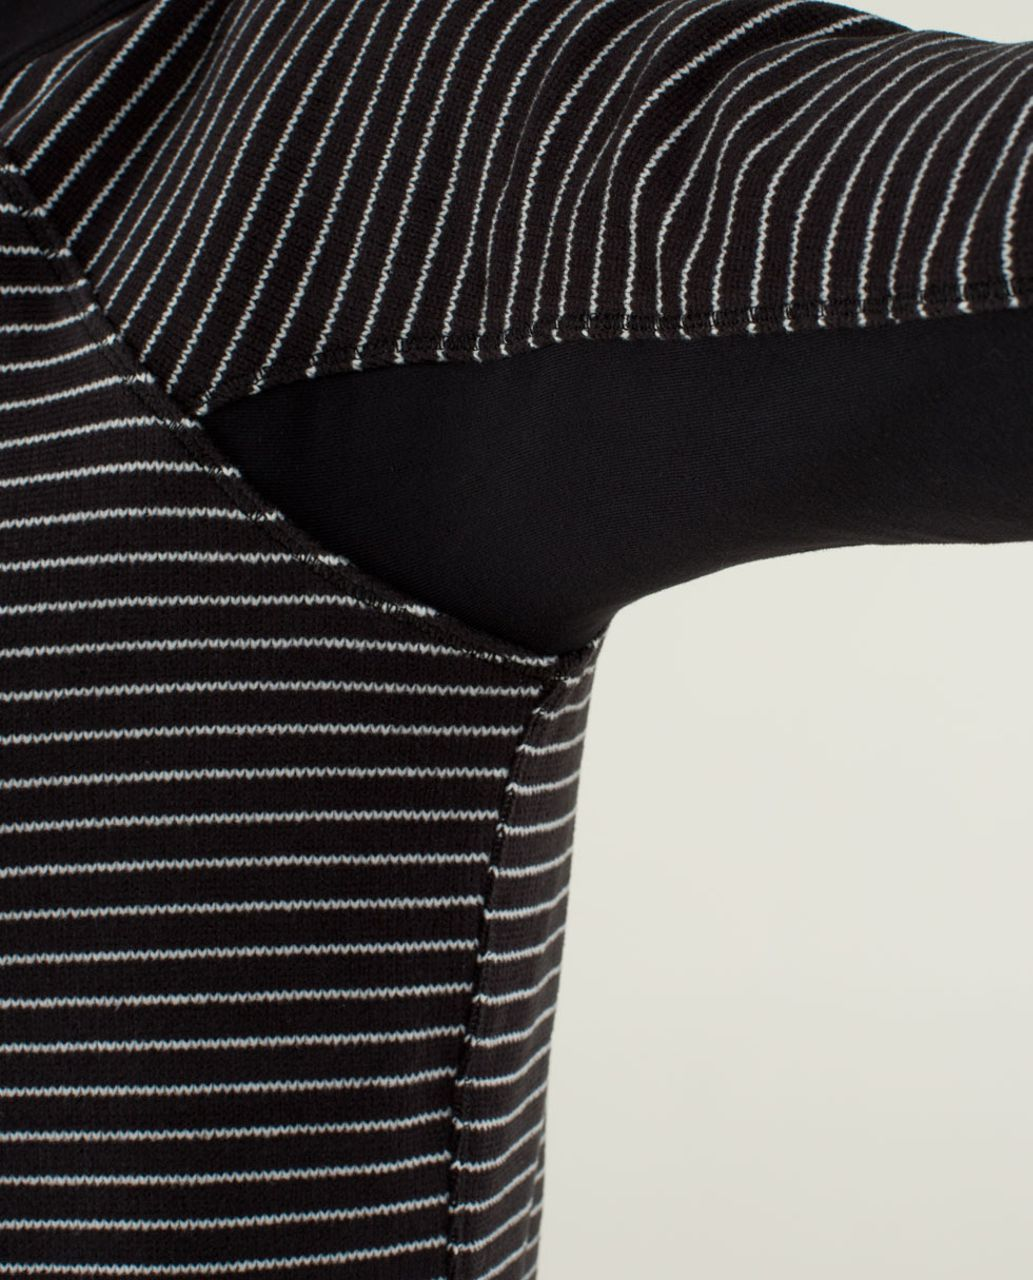 Lululemon Fleet Street Pullover - Parallel Stripe Black White / Black